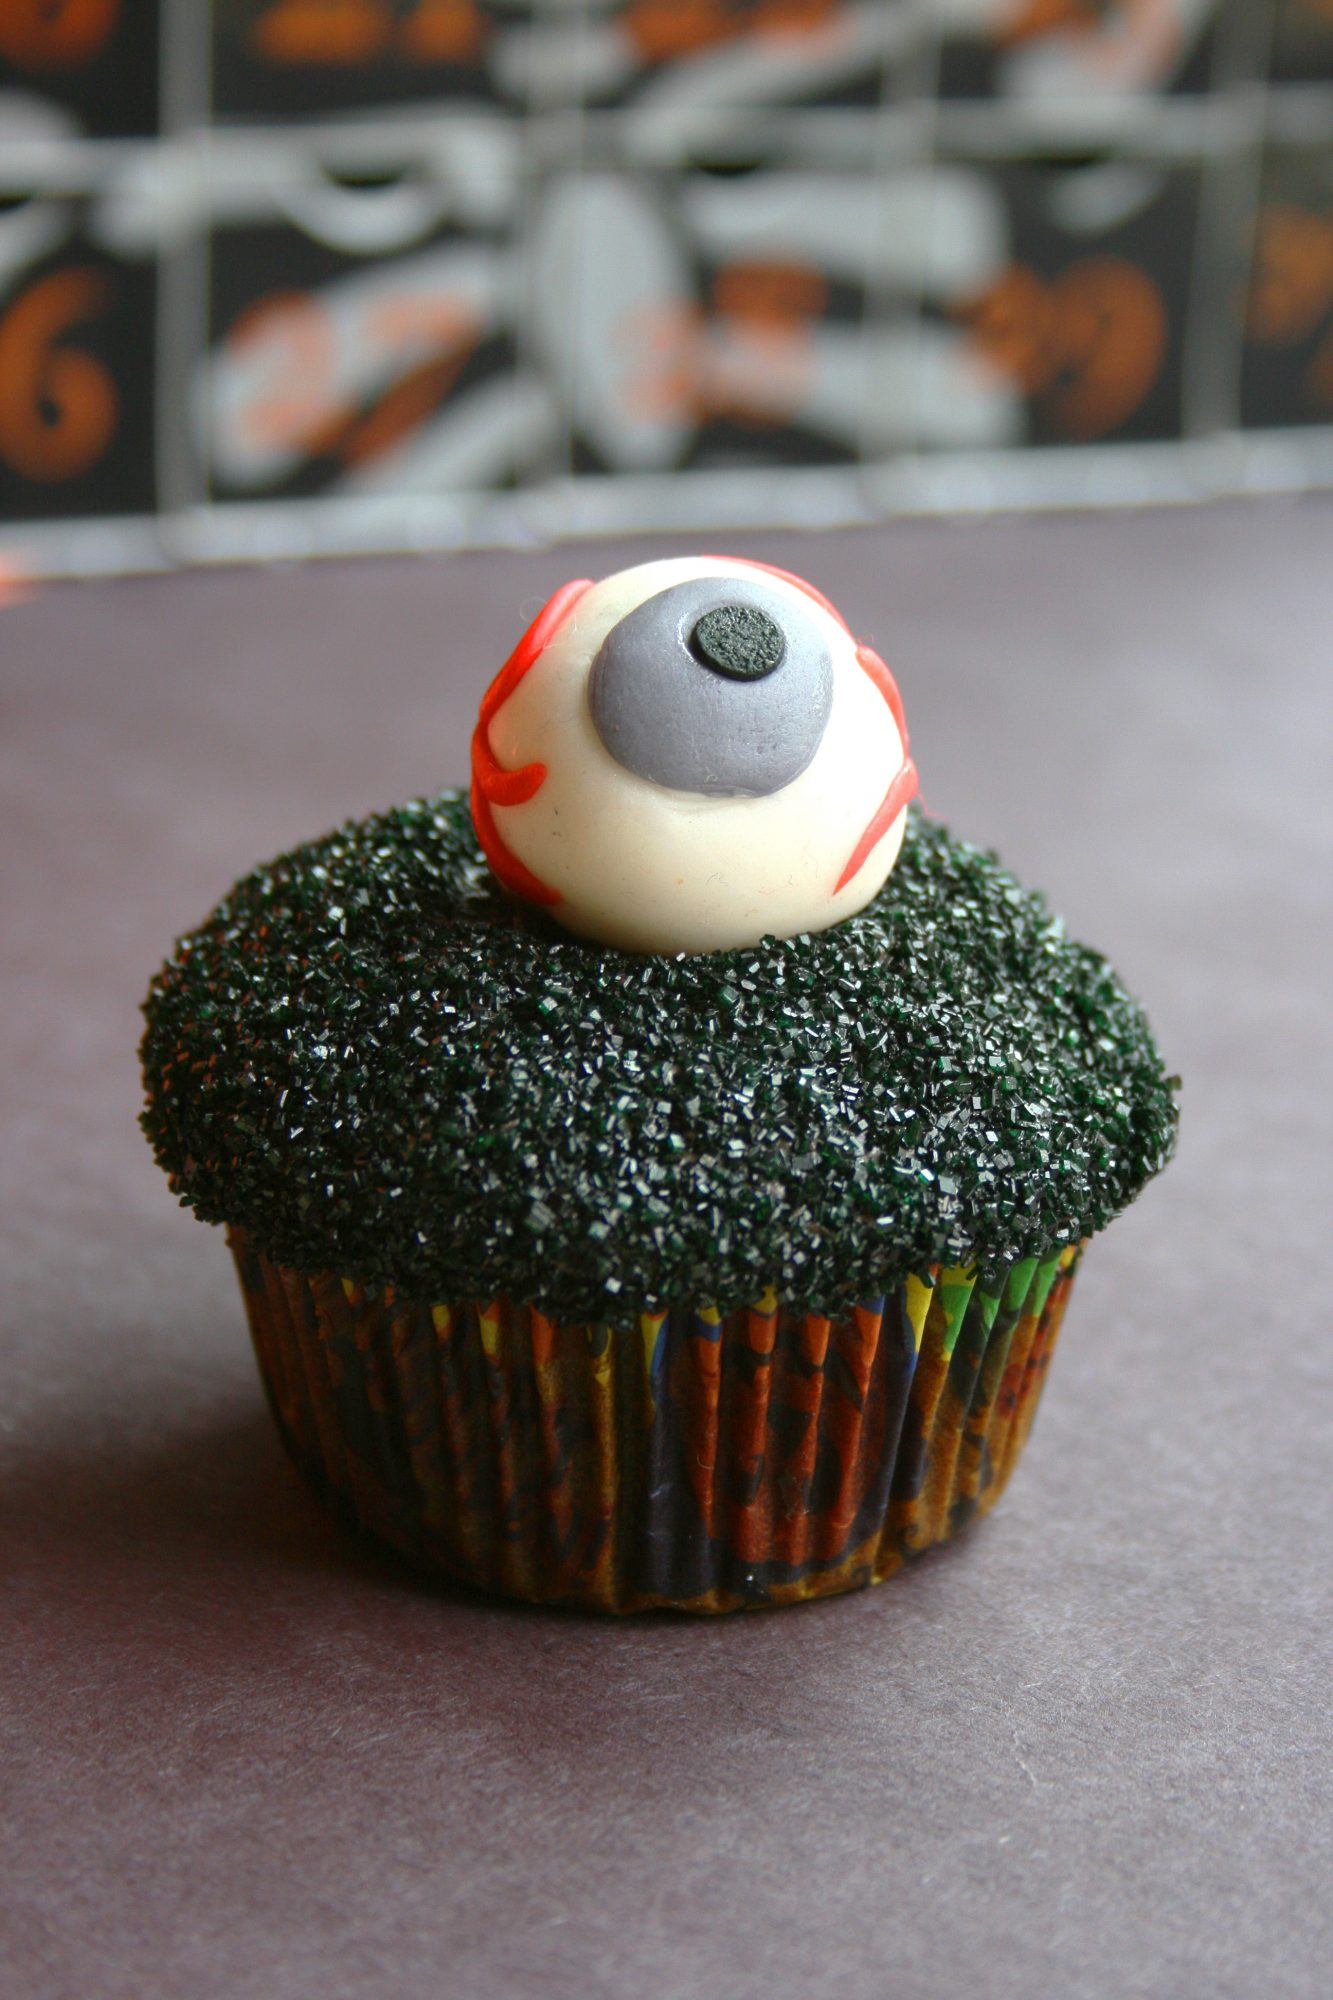 a single cupcake decorated for Halloween with a bloodshot eyeball made of fondant on top